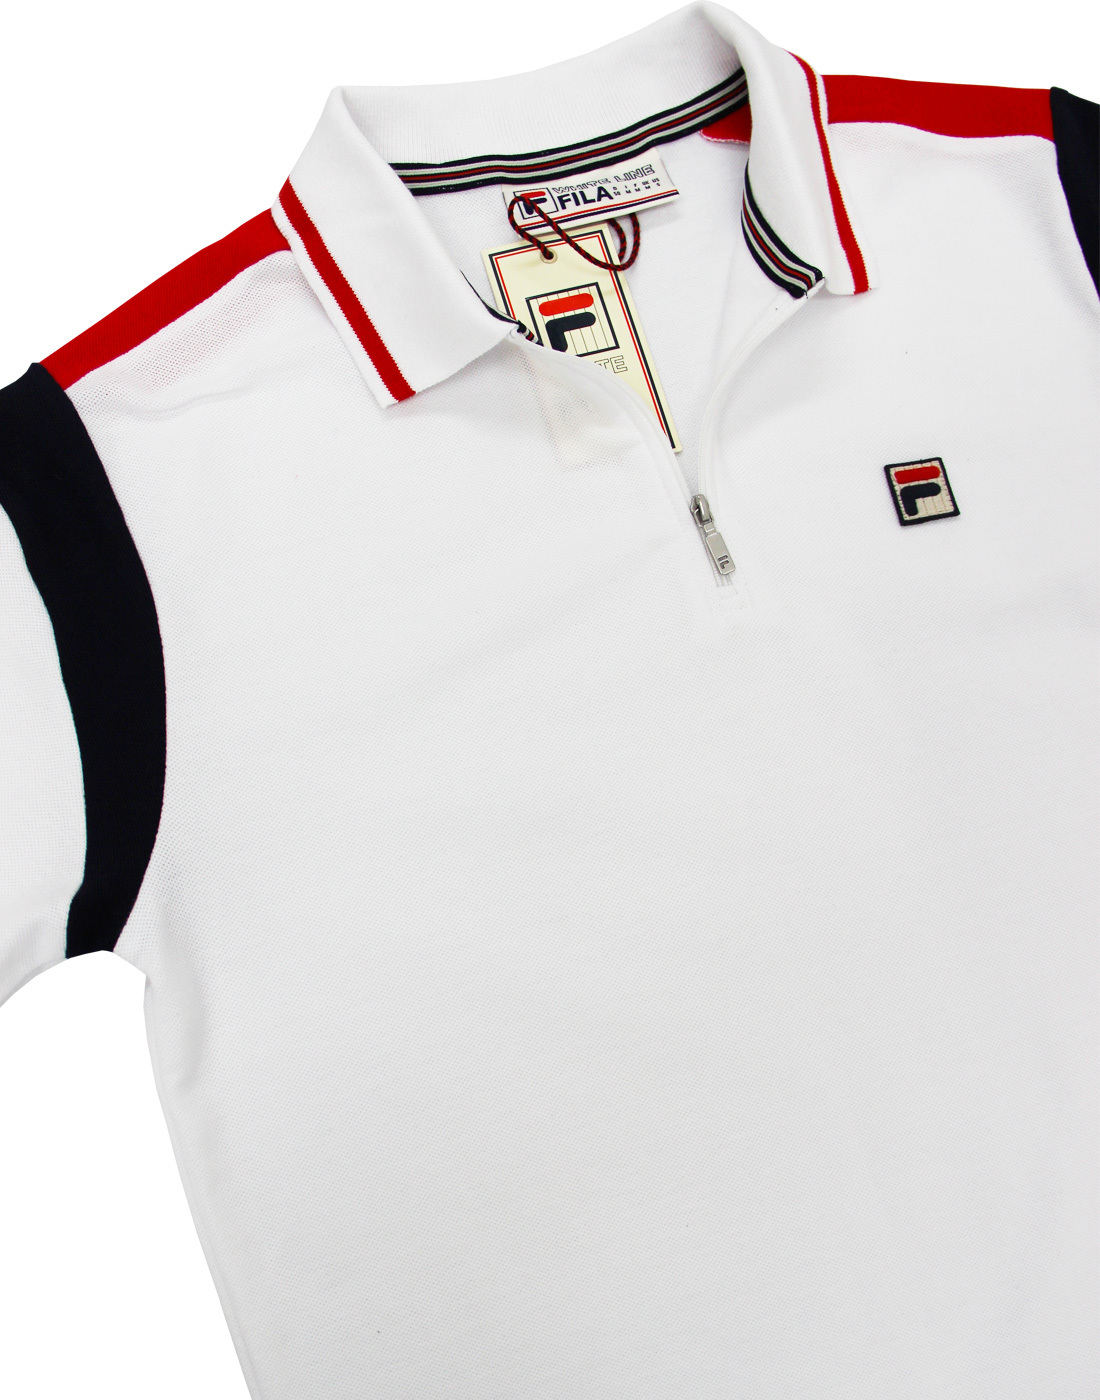 Analytisk inflation kock  FILA VINTAGE Fabbiano Retro 80s Mod Zip Neck Pique Polo in White